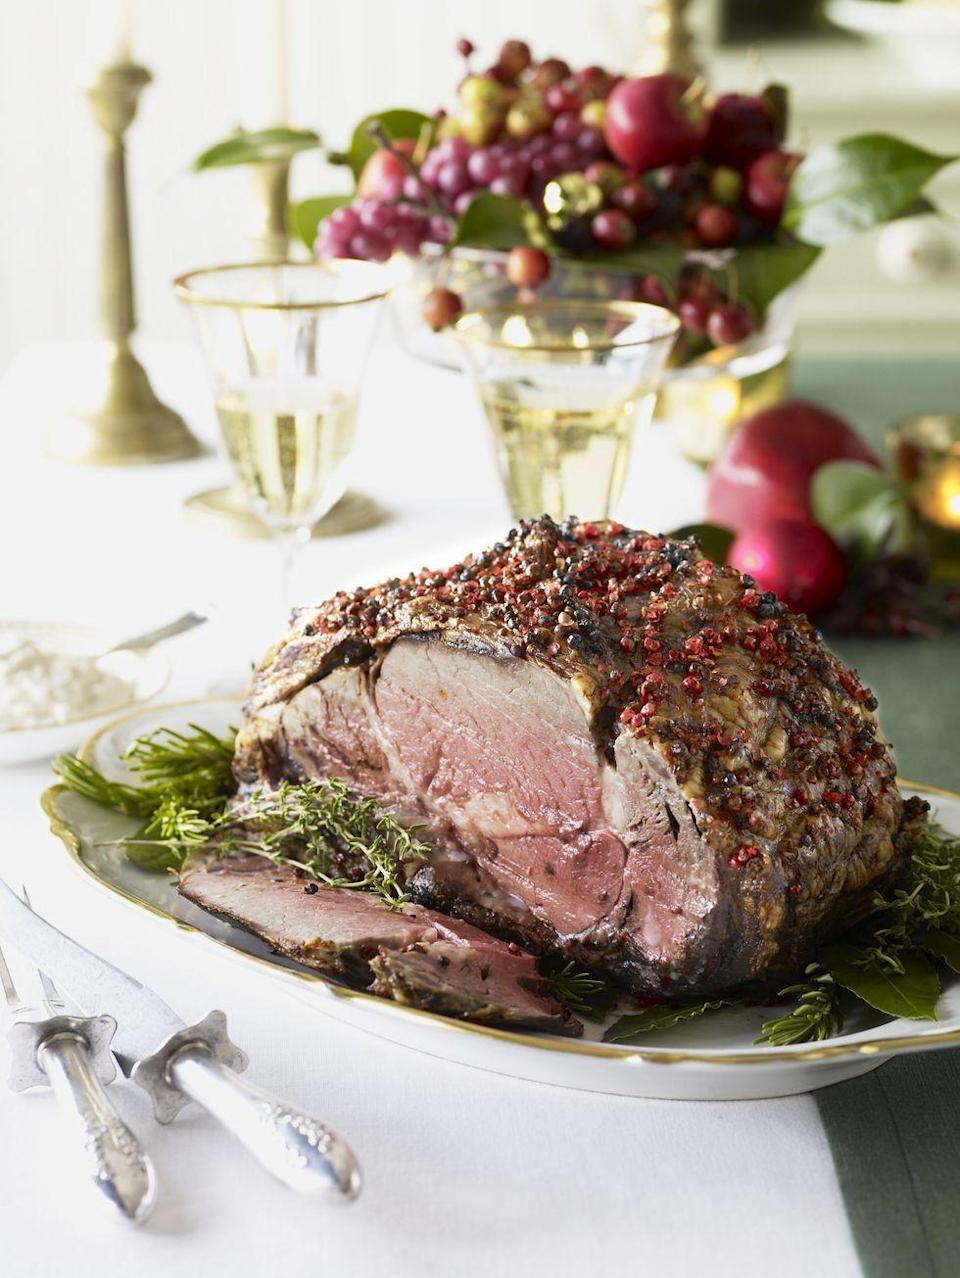 """<p>For another show-stopping beef meal, try this easy spin on prime rib. The cream gravy with roasted garlic and horseradish is unforgettable.</p><p><em><a href=""""https://www.goodhousekeeping.com/food-recipes/a10692/pepper-crusted-prime-rib-recipe-ghk1210/"""" rel=""""nofollow noopener"""" target=""""_blank"""" data-ylk=""""slk:Get the recipe for Pepper-Crusted Prime Rib »"""" class=""""link rapid-noclick-resp"""">Get the recipe for Pepper-Crusted Prime Rib »</a></em></p>"""